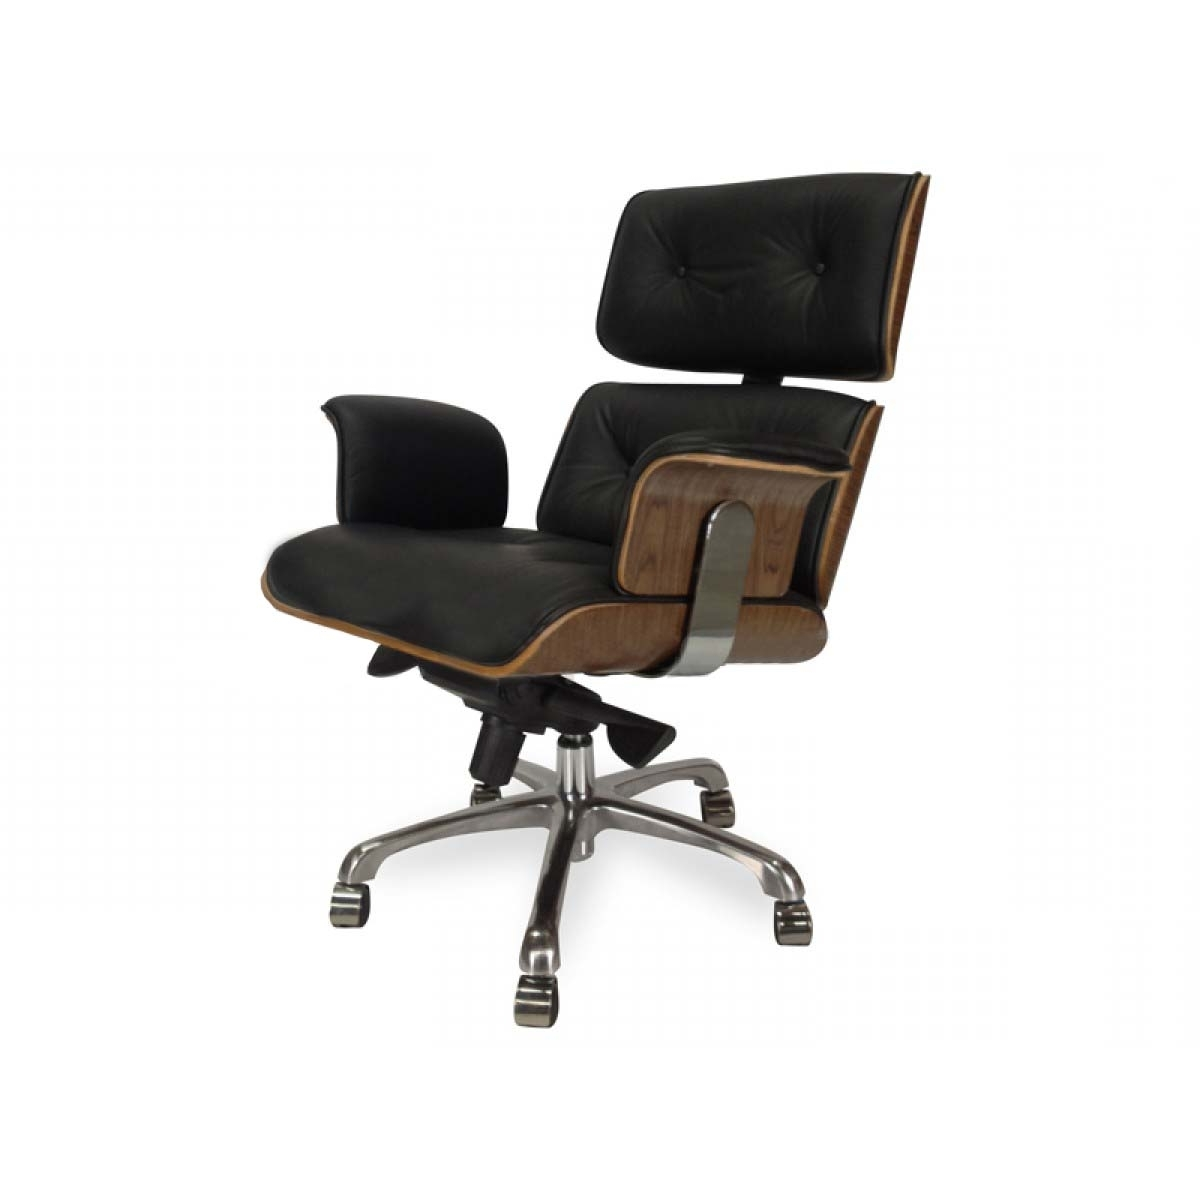 Premium Executive Office Chairs Within 2019 Awesome Eames Executive Desk Chair Pictures – Liltigertoo (View 7 of 20)